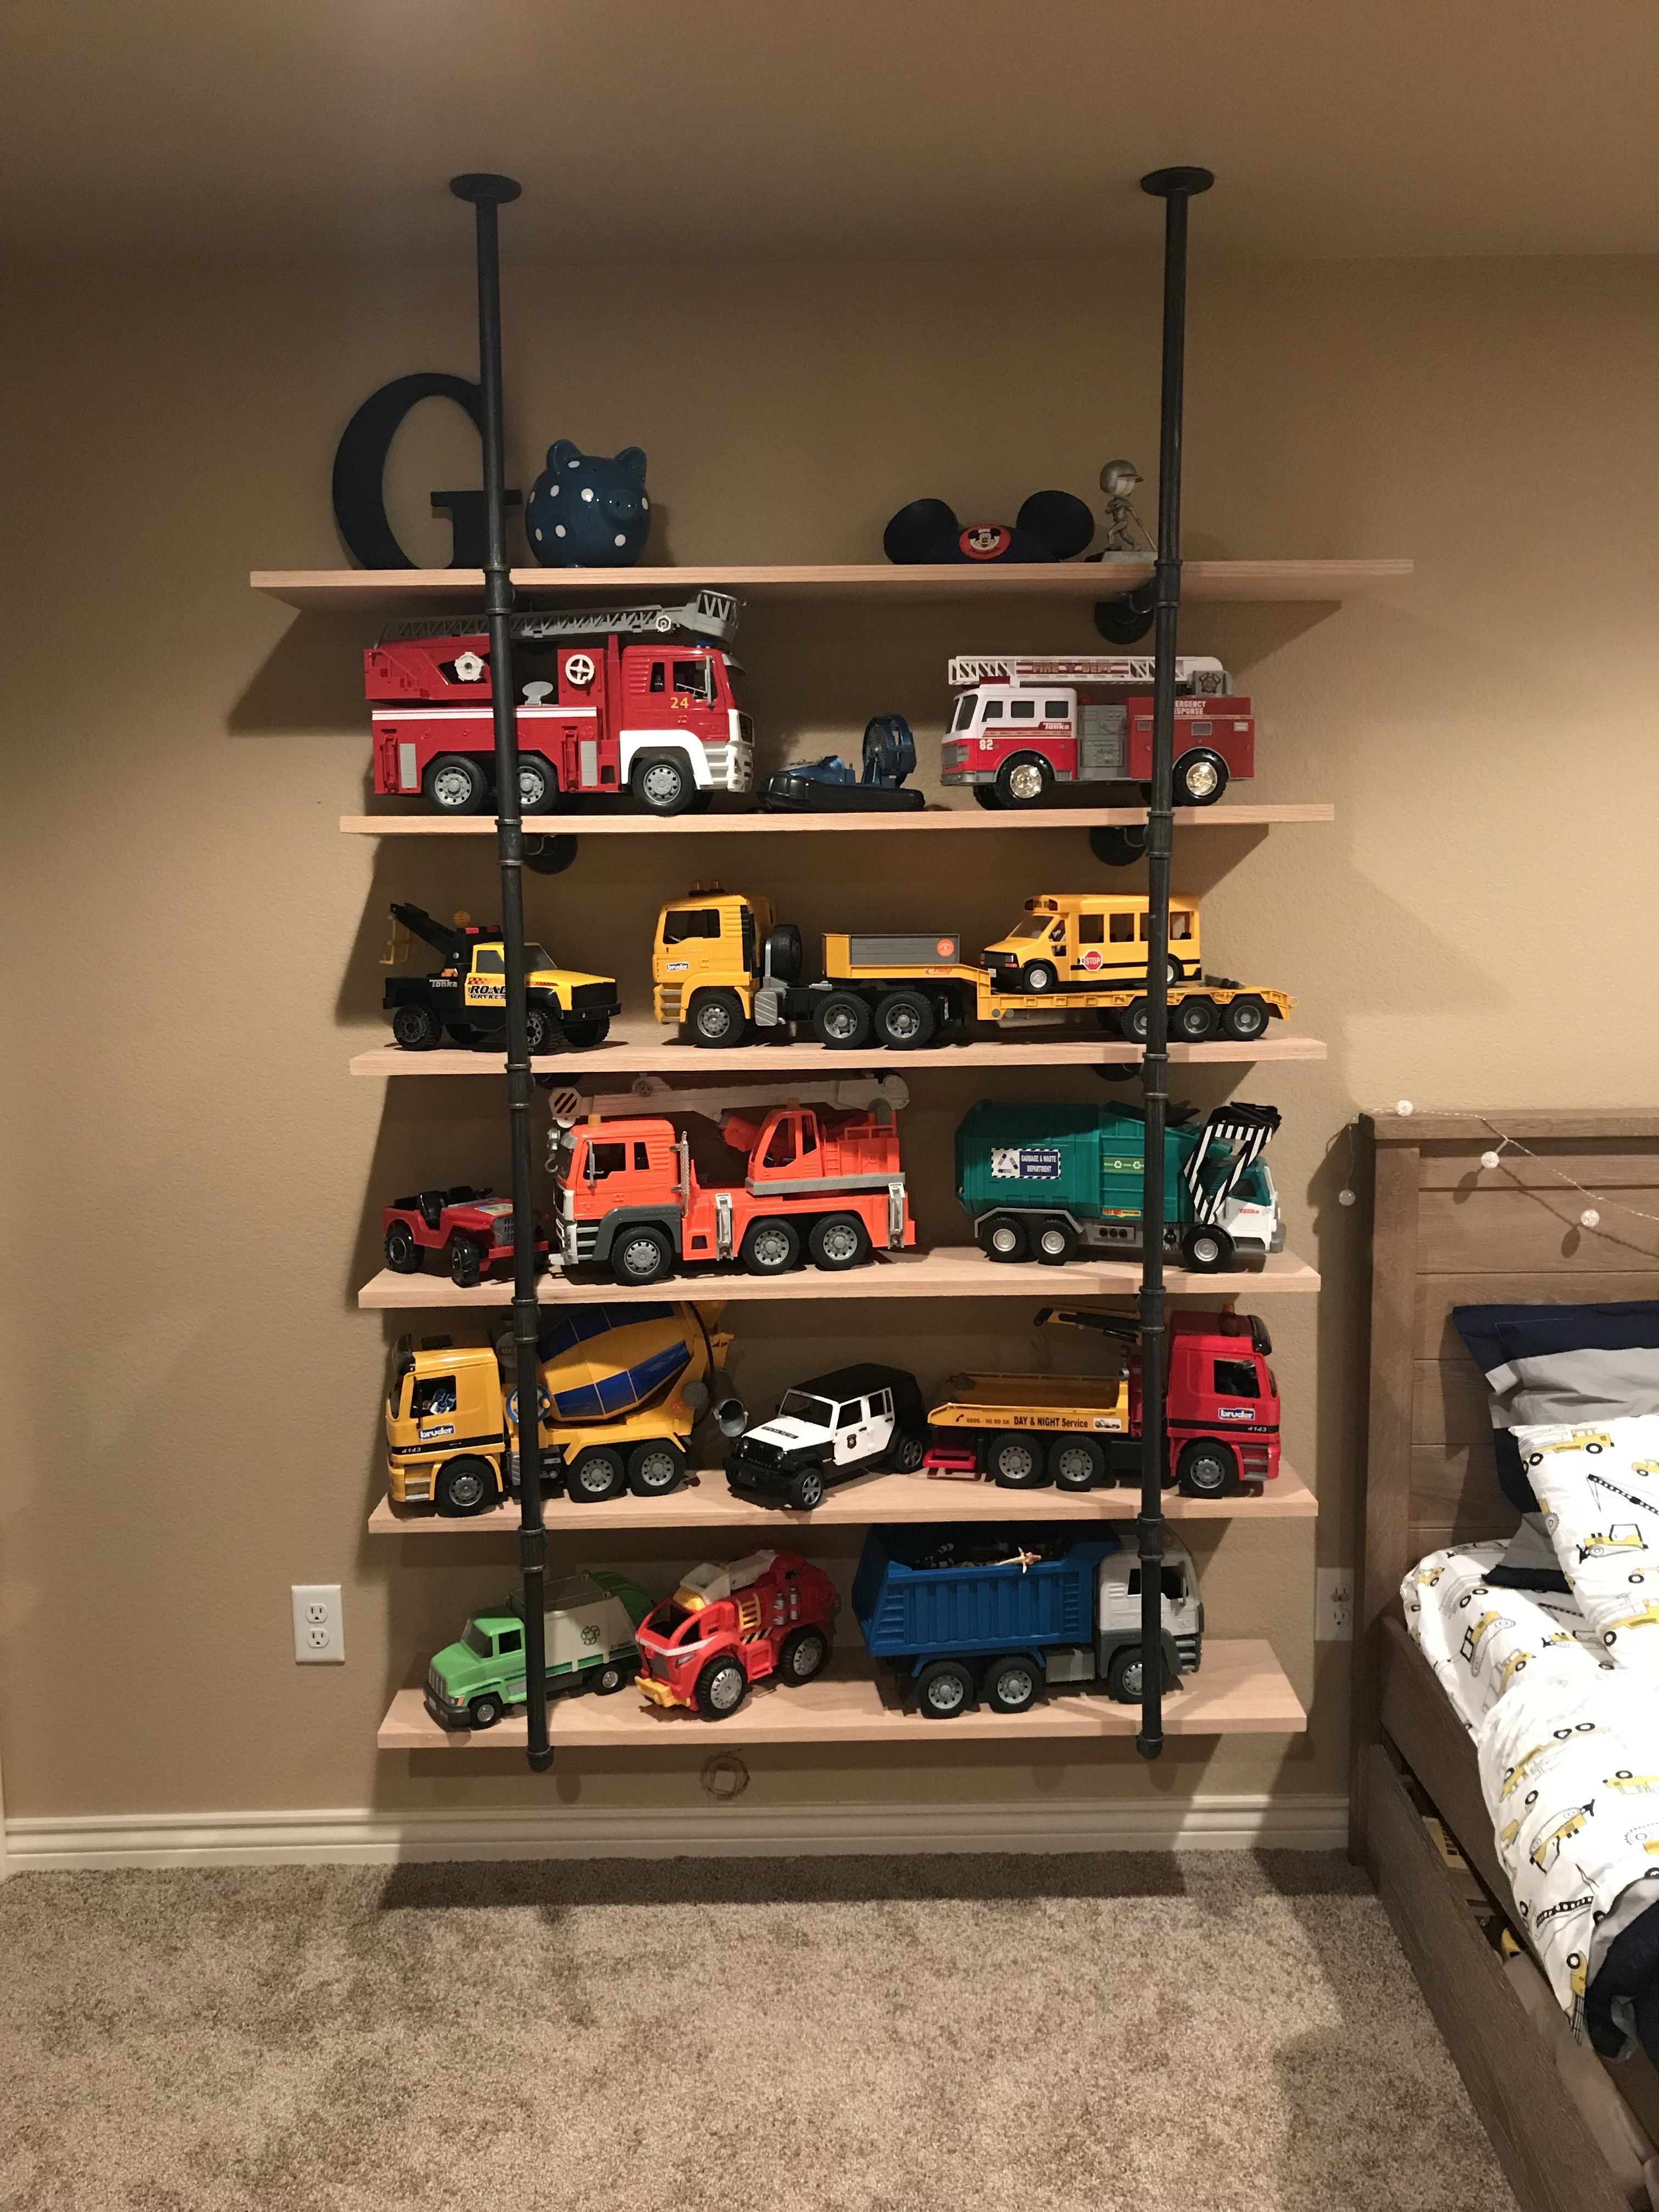 Truck Storage Bruder Trucks Shelves Toy Storage Boy Room Boys Big Boy Room Boy Room Toddler Rooms